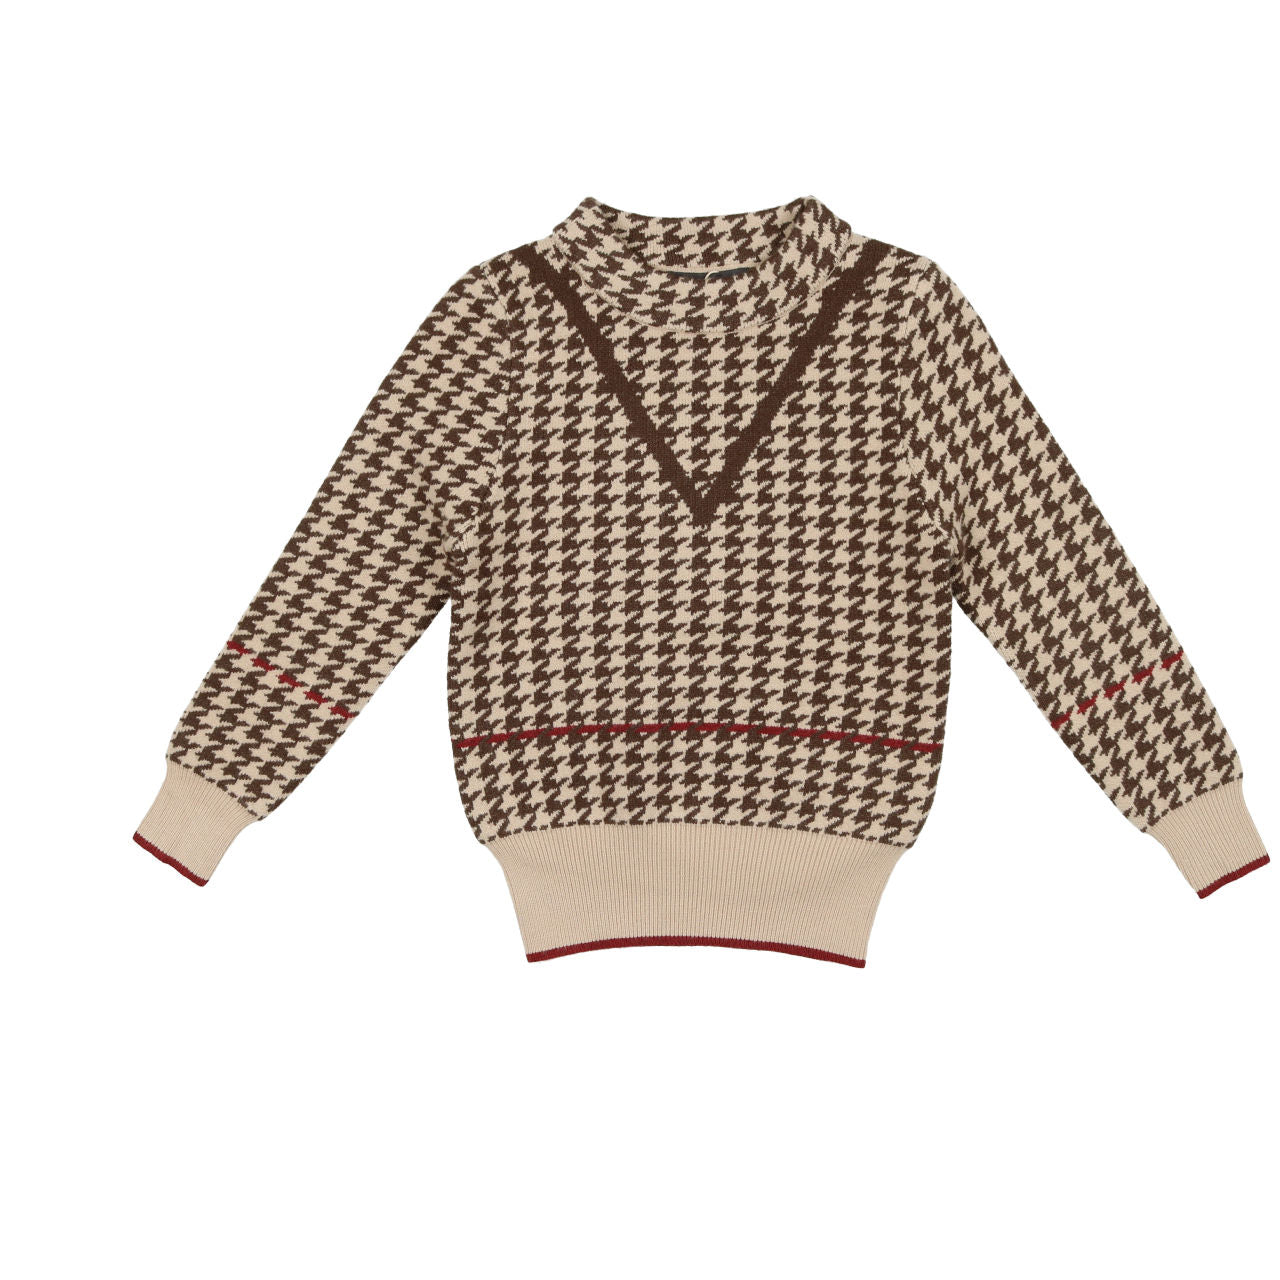 Belati Brown Houndstooth Sweater